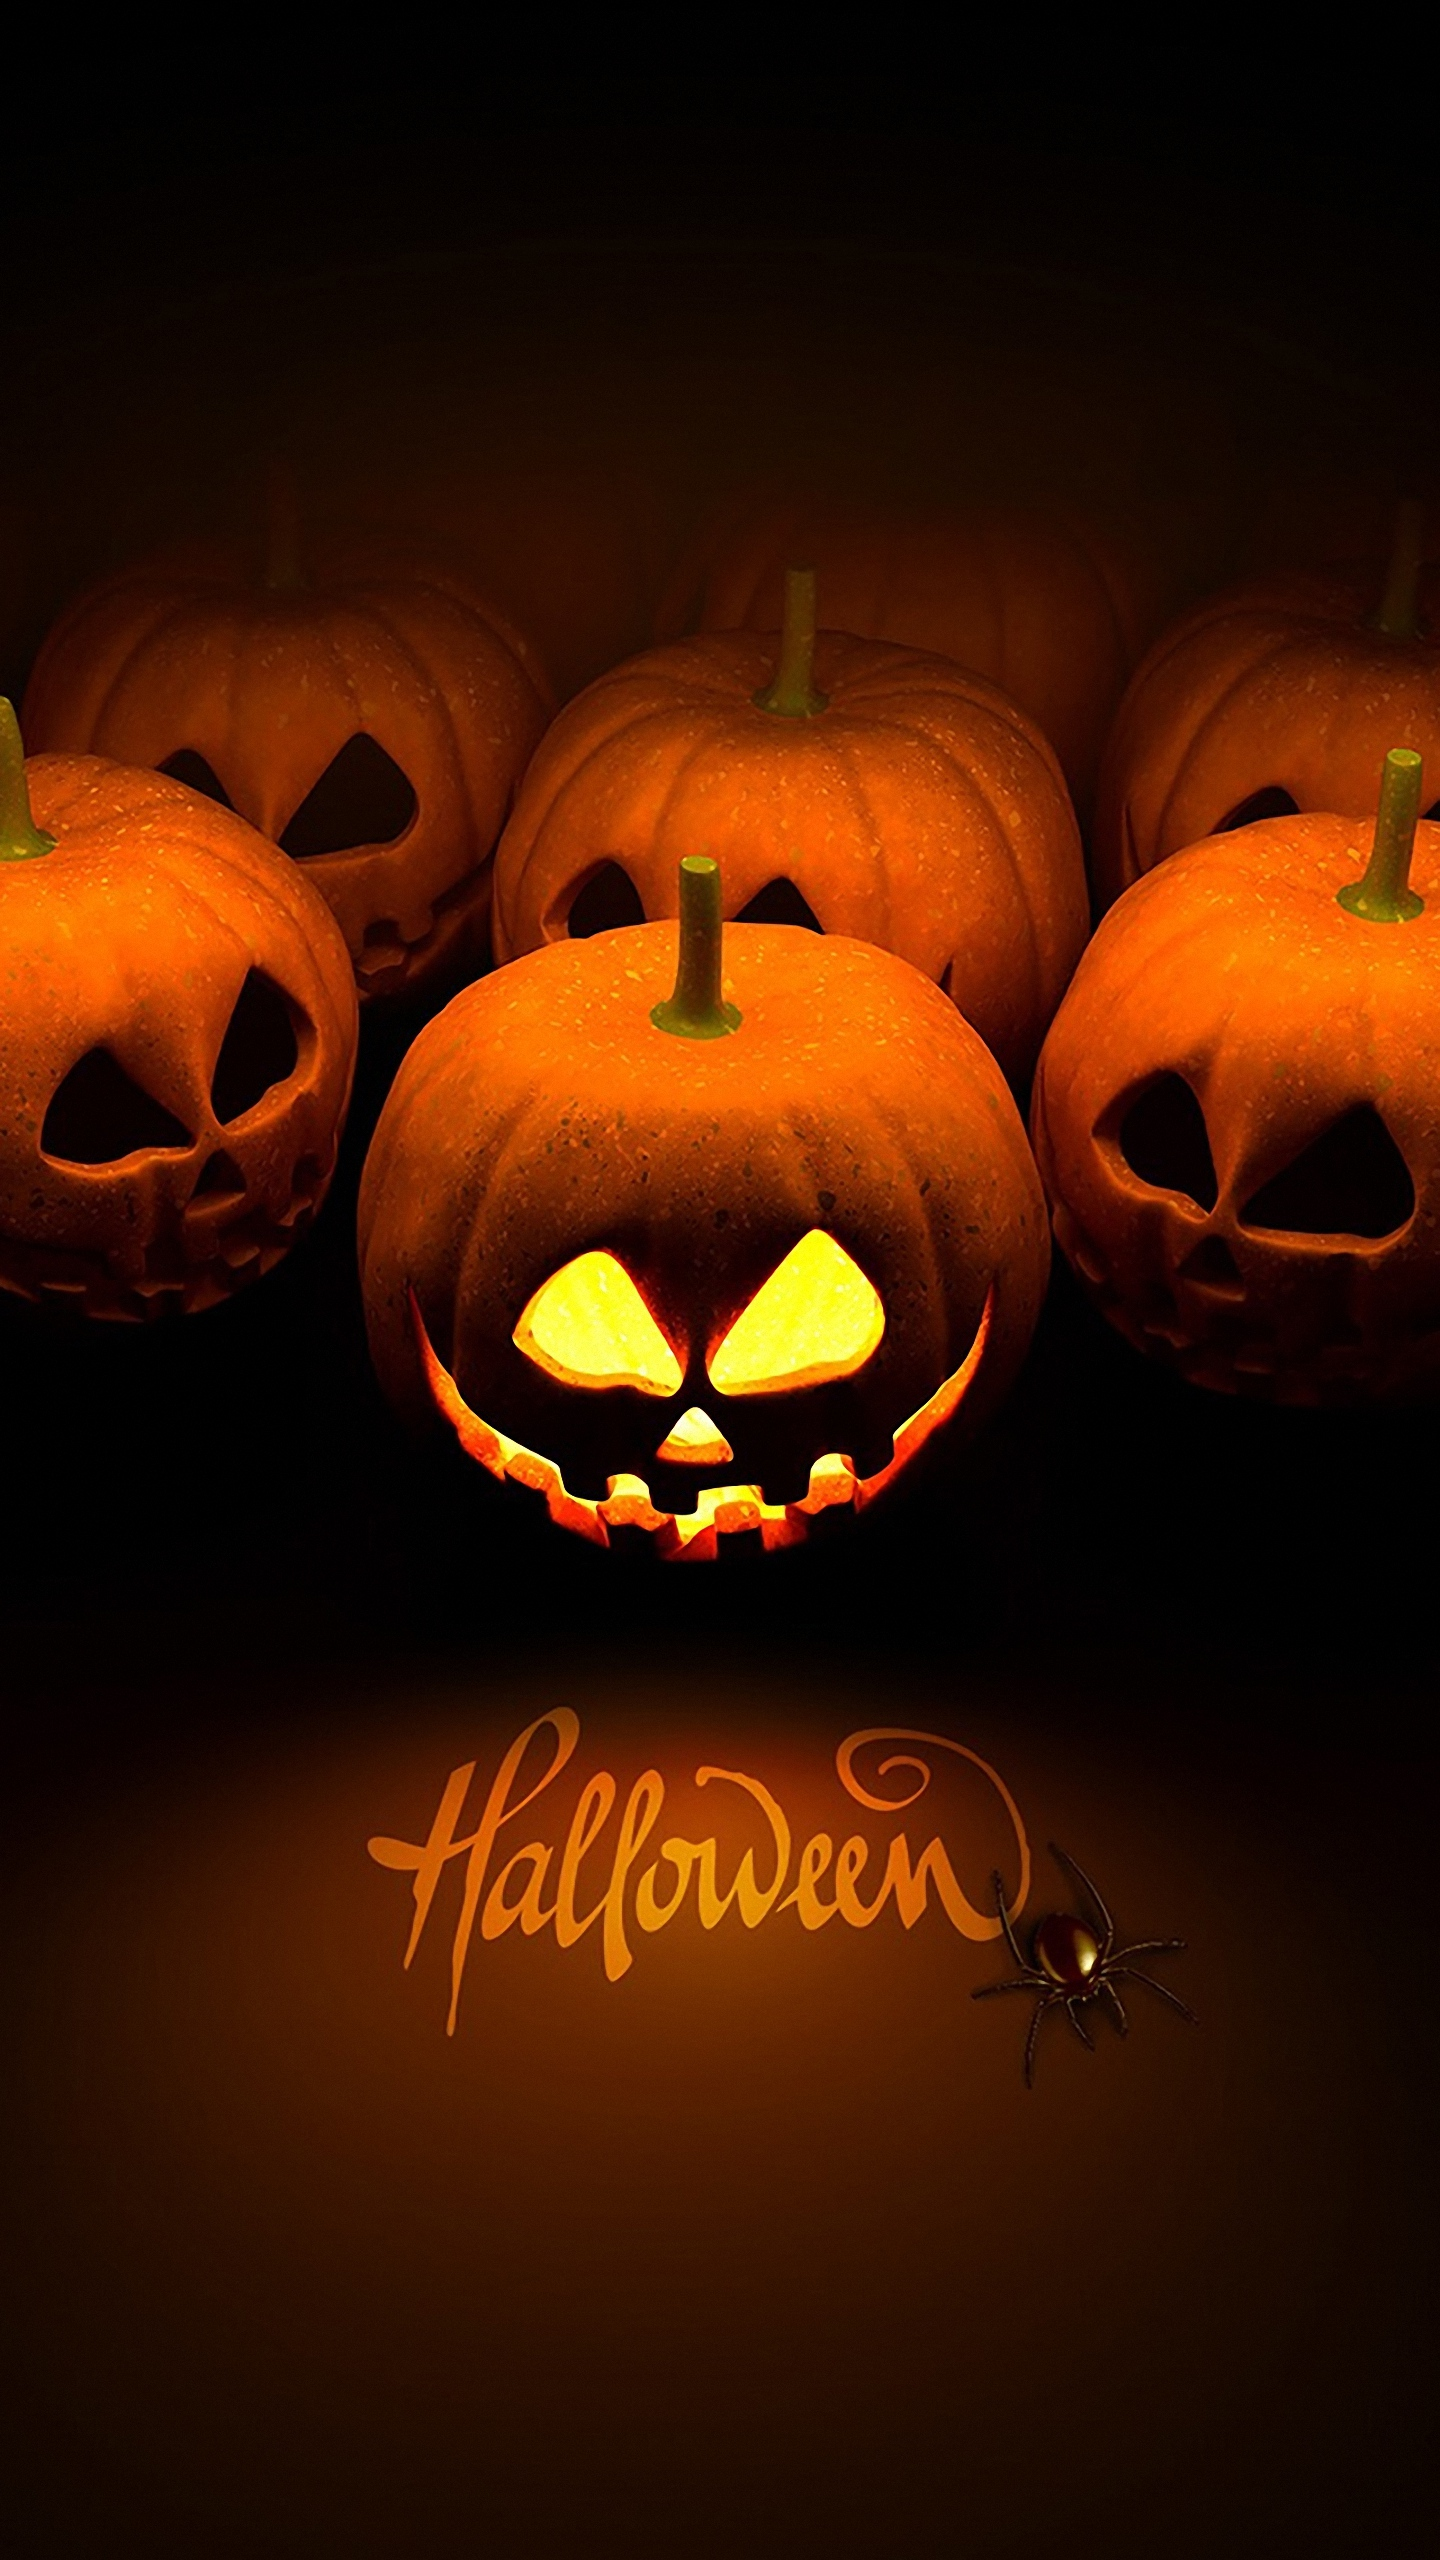 Free Fall Color Wallpaper Halloween Wallpapers Iphone Y Android Fondos De Pantalla